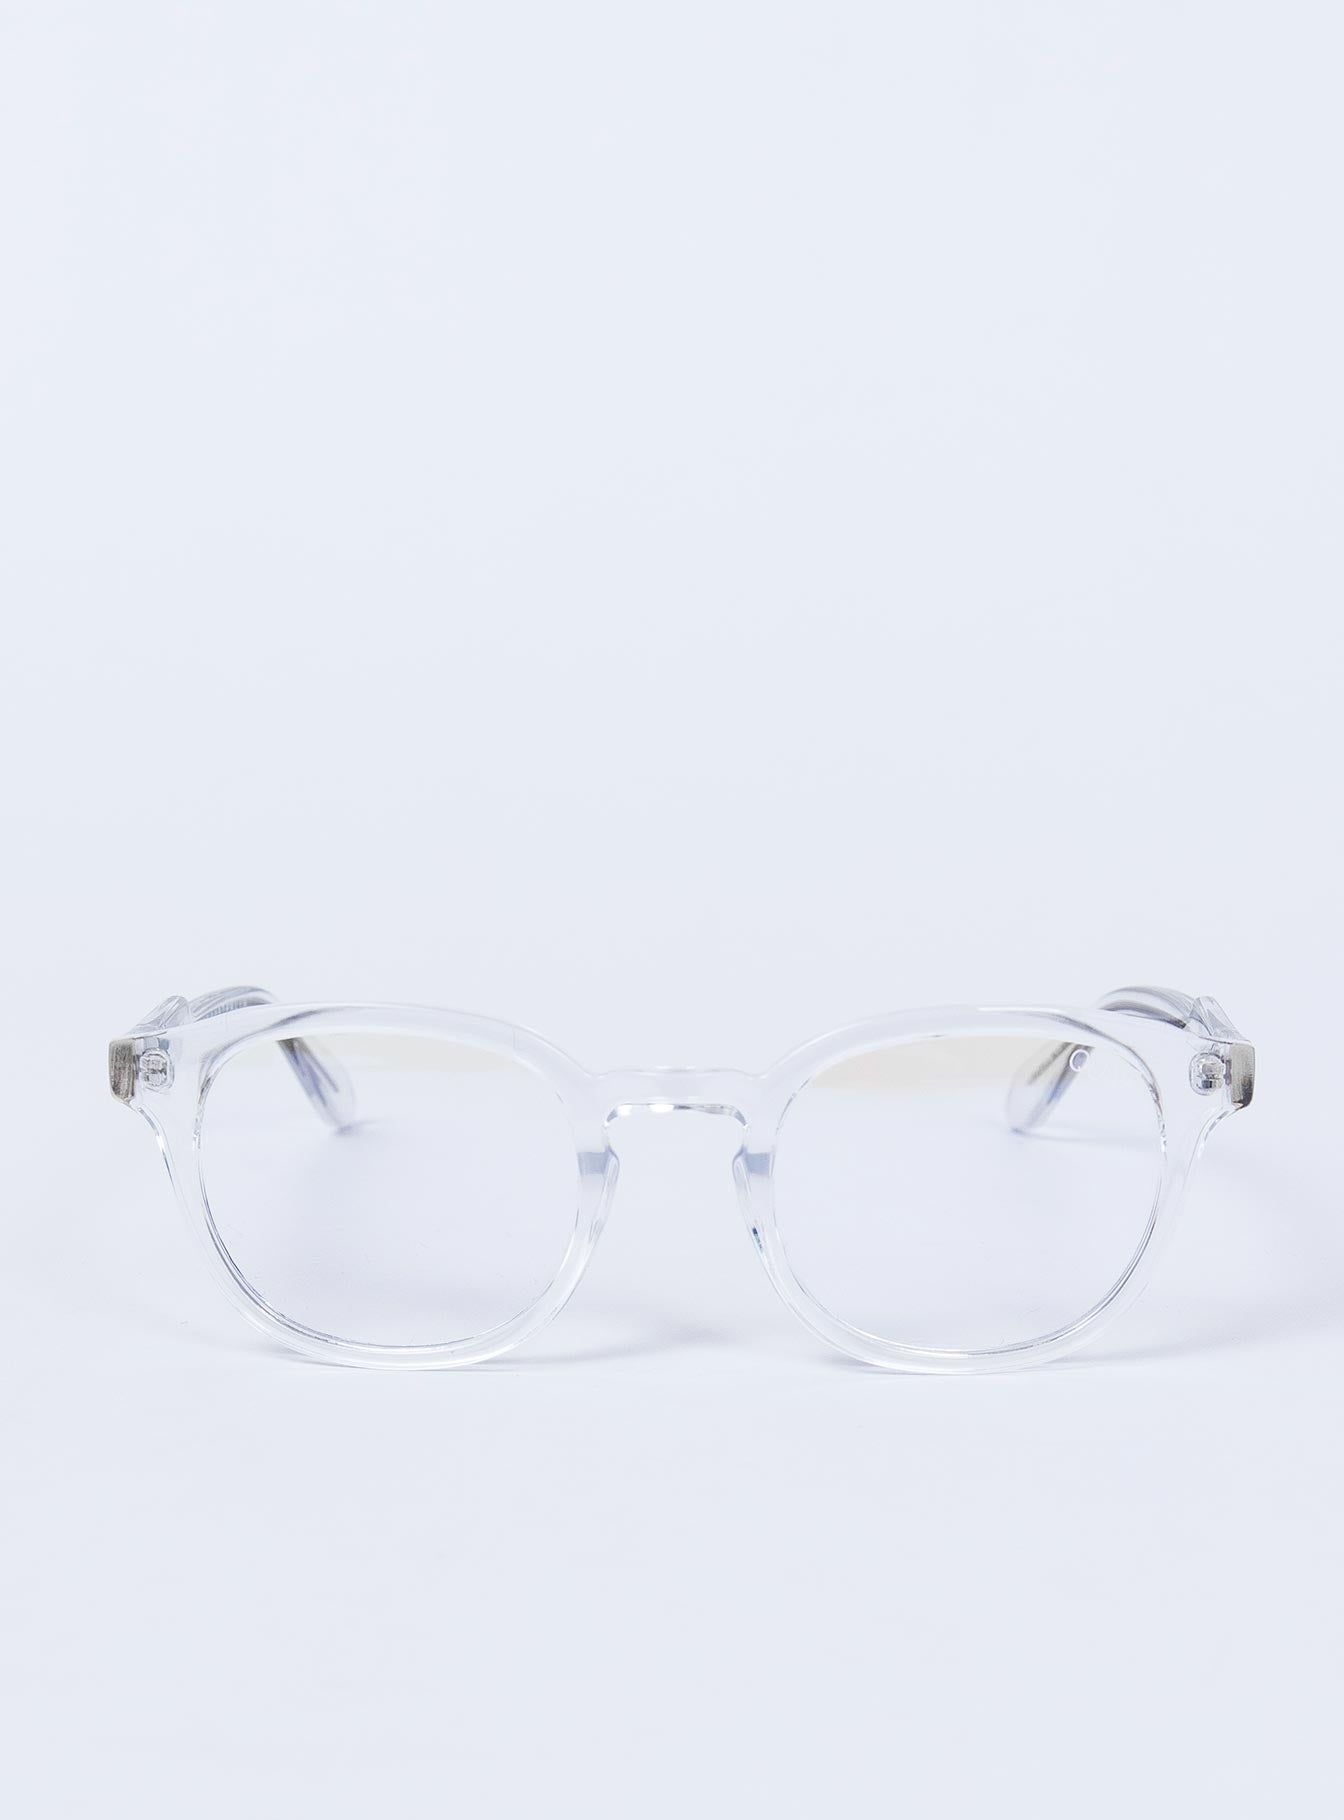 Quay Australia Blue Light Glasses Walk On Clear